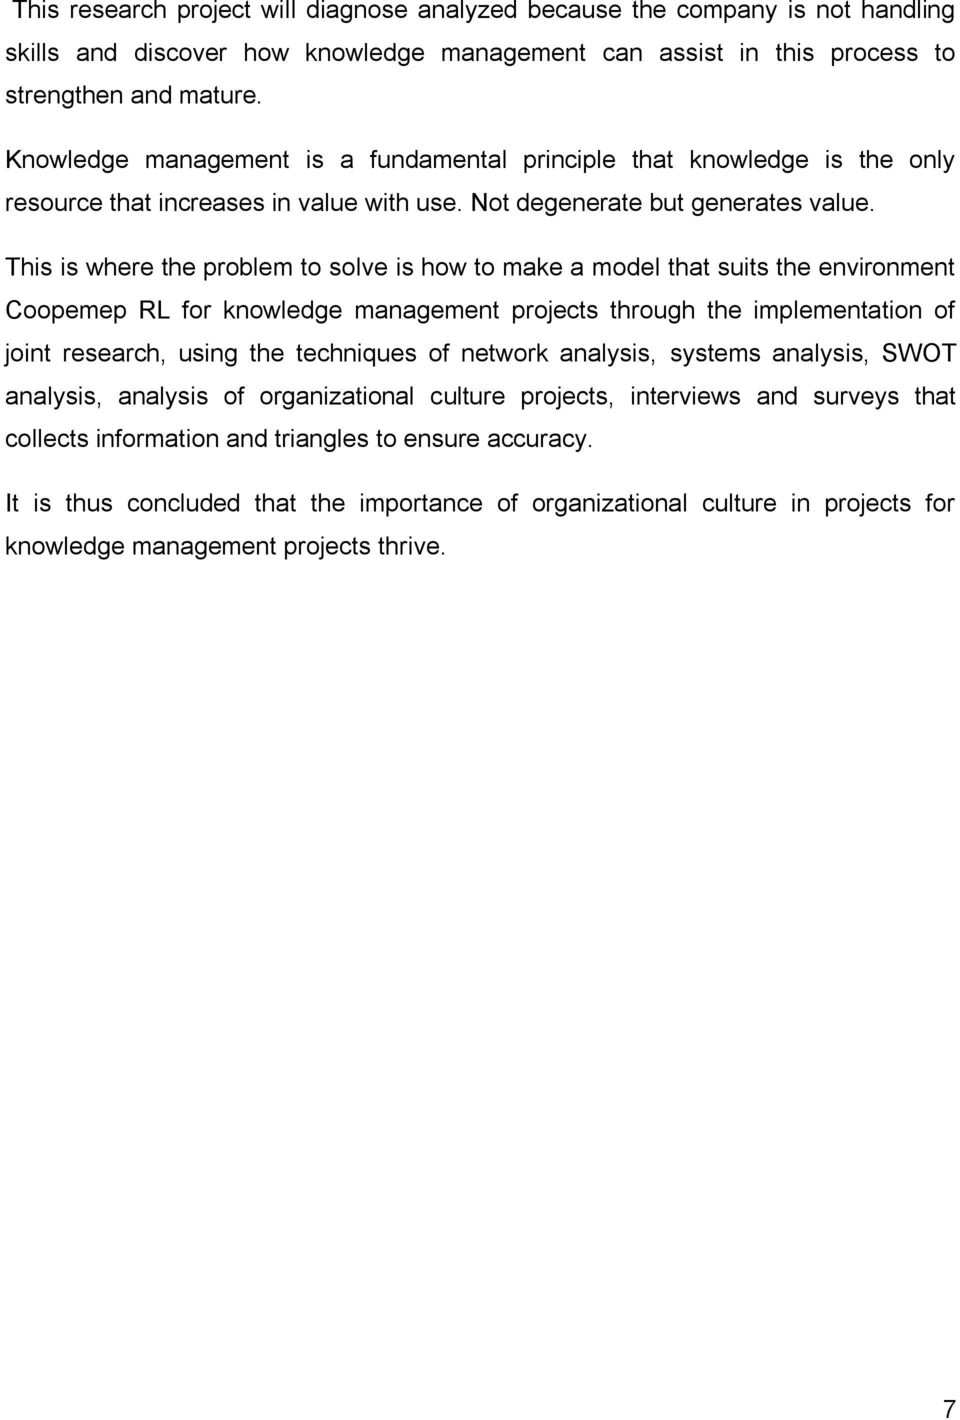 This is where the problem to solve is how to make a model that suits the environment Coopemep RL for knowledge management projects through the implementation of joint research, using the techniques